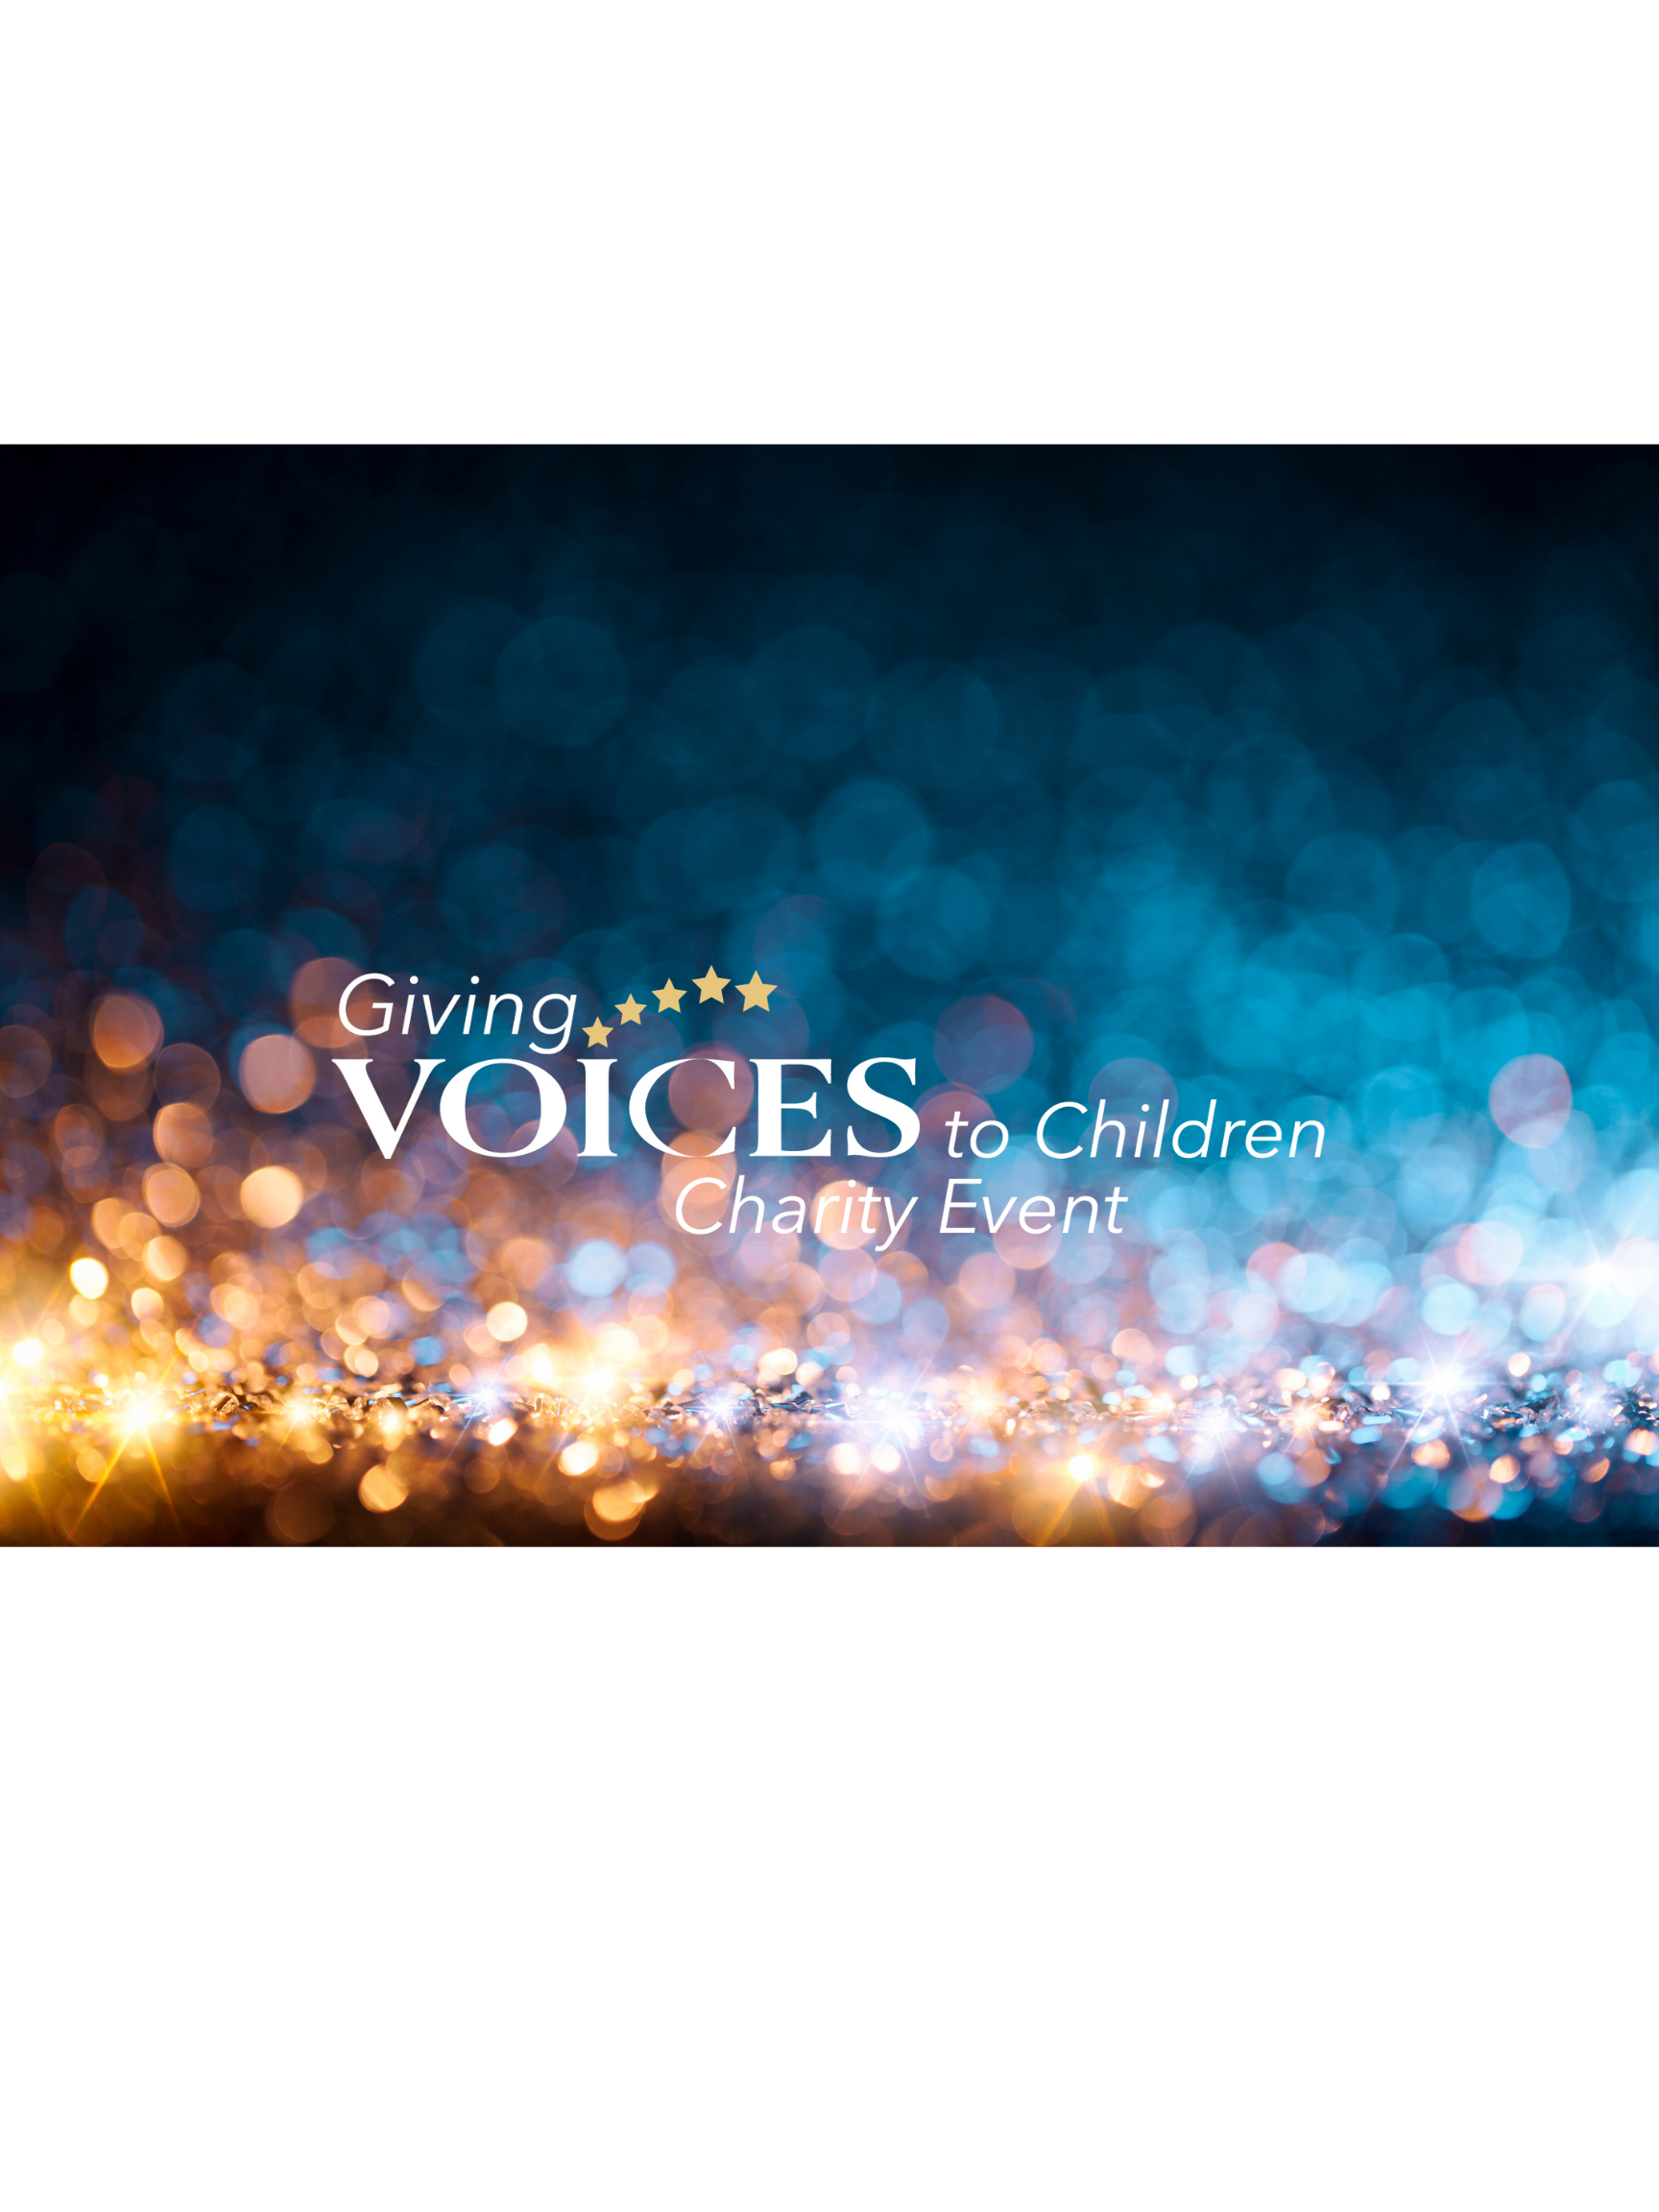 4050-E Giving Voices to Children Charity event   image